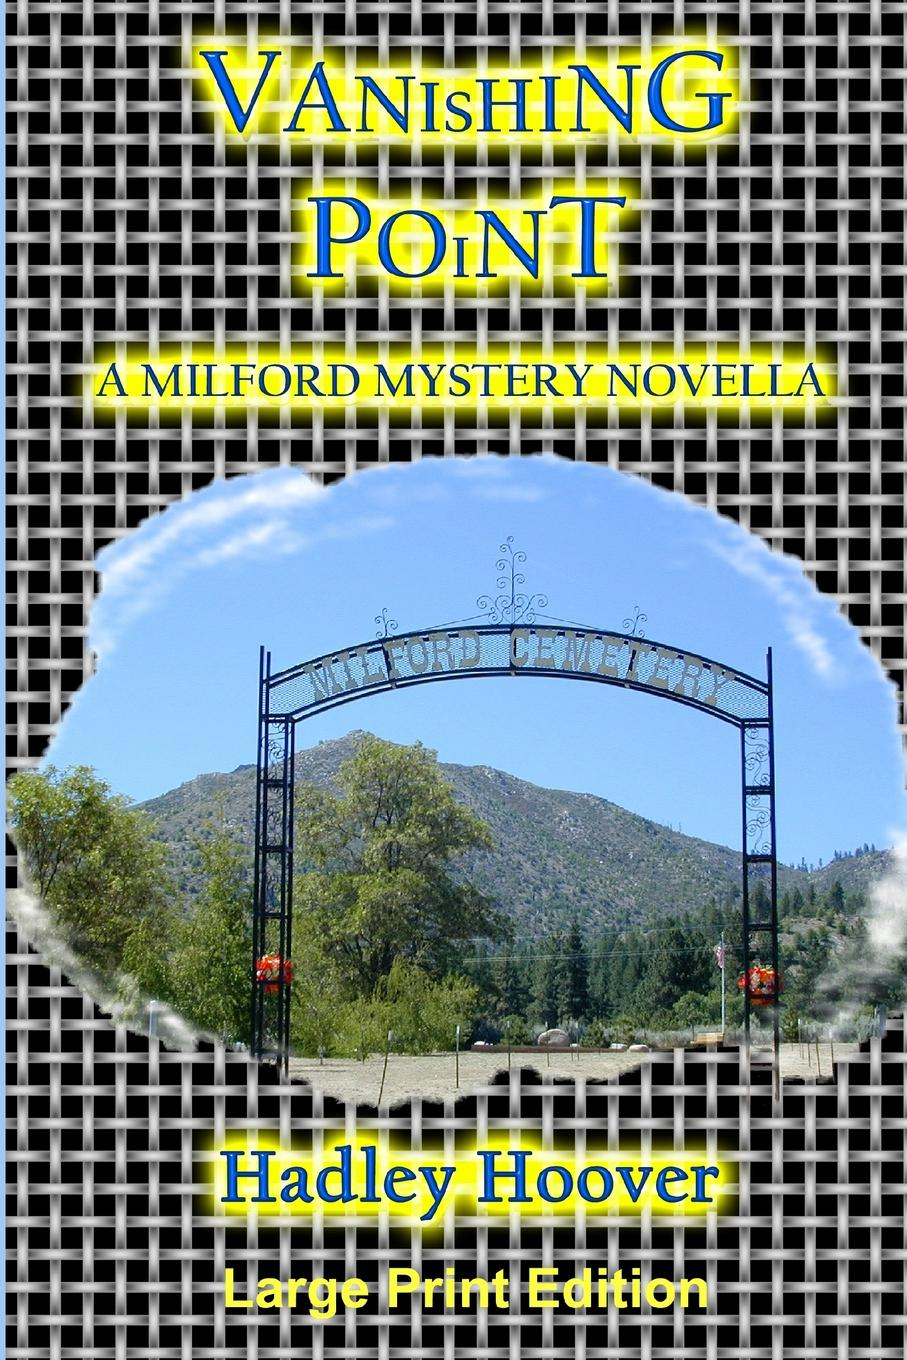 Hadley Hoover Vanishing Point. A Milford Mystery Novella (LP) silver mechanical pocket watch man smooth case open two vintage father stylish wind roman number hour good quality short chain